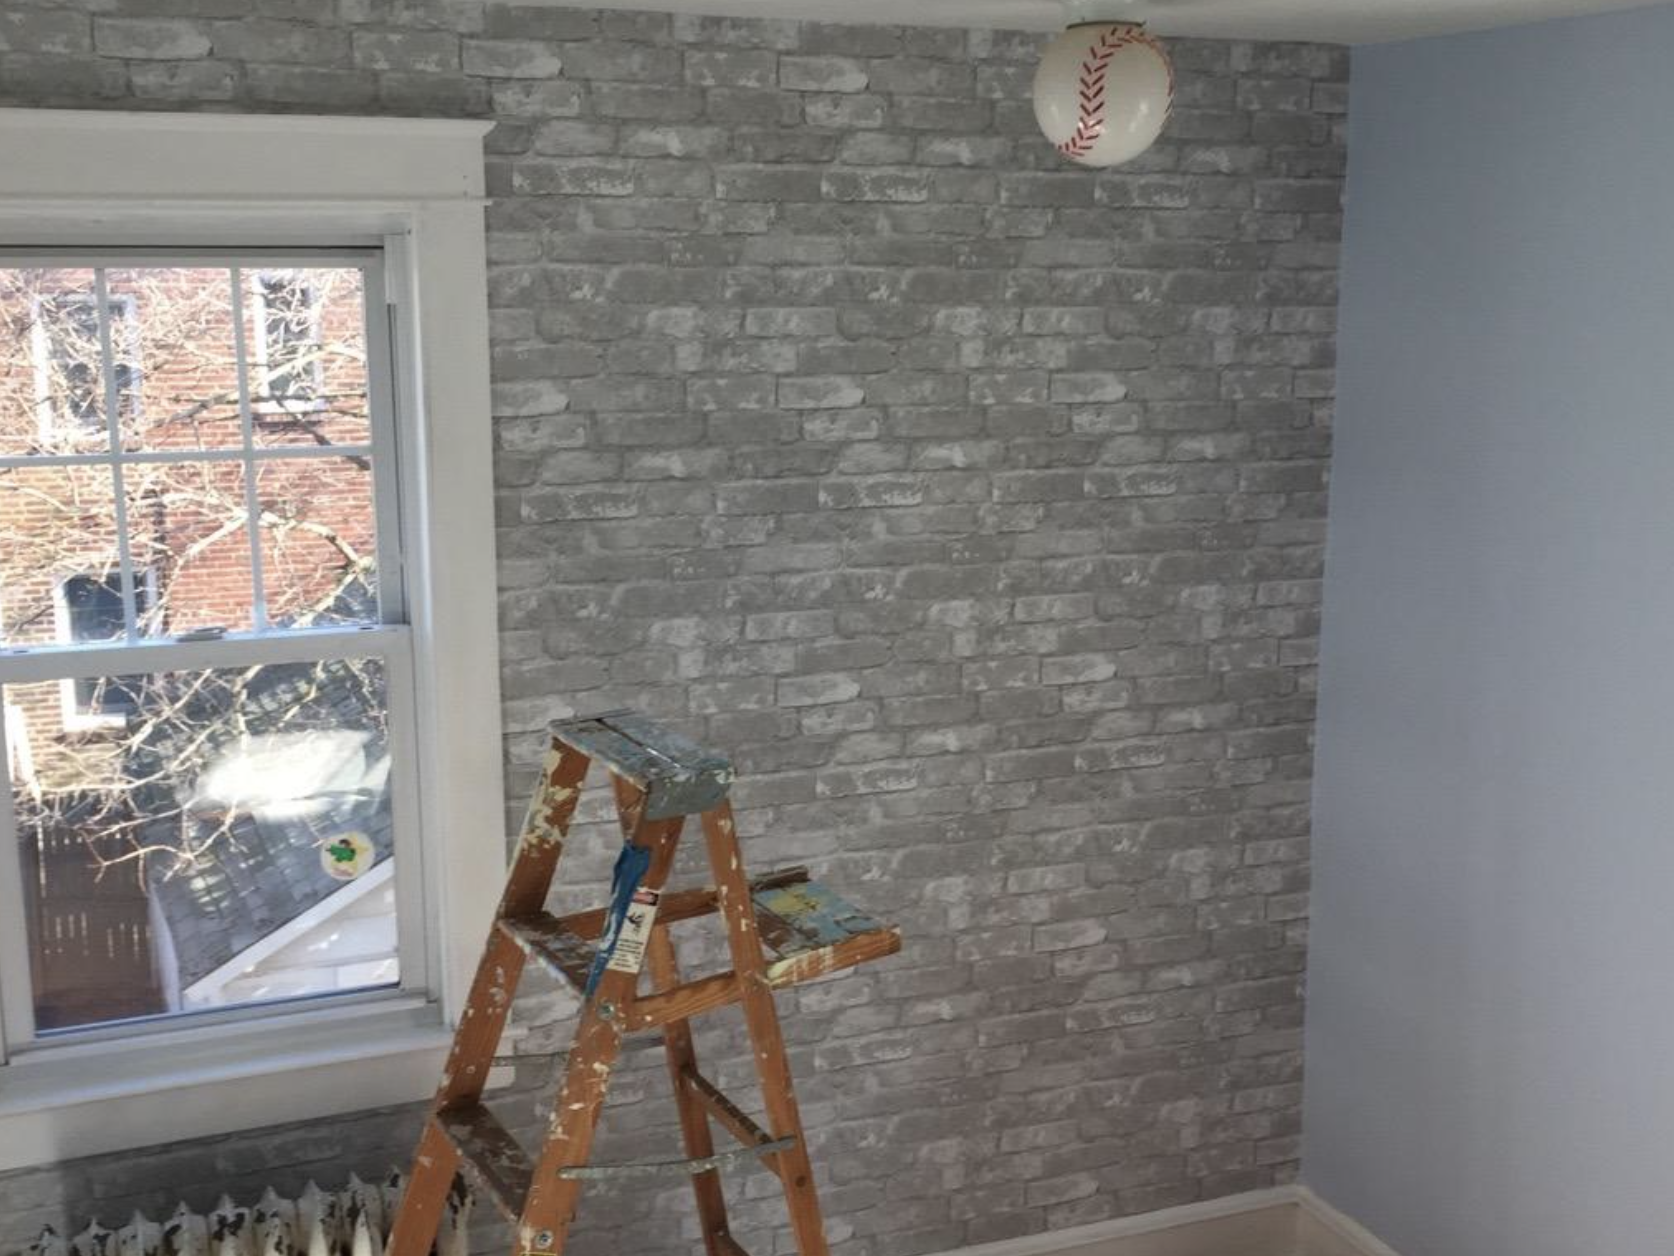 A customer review photo of their wall with the freshly installed wallpaper